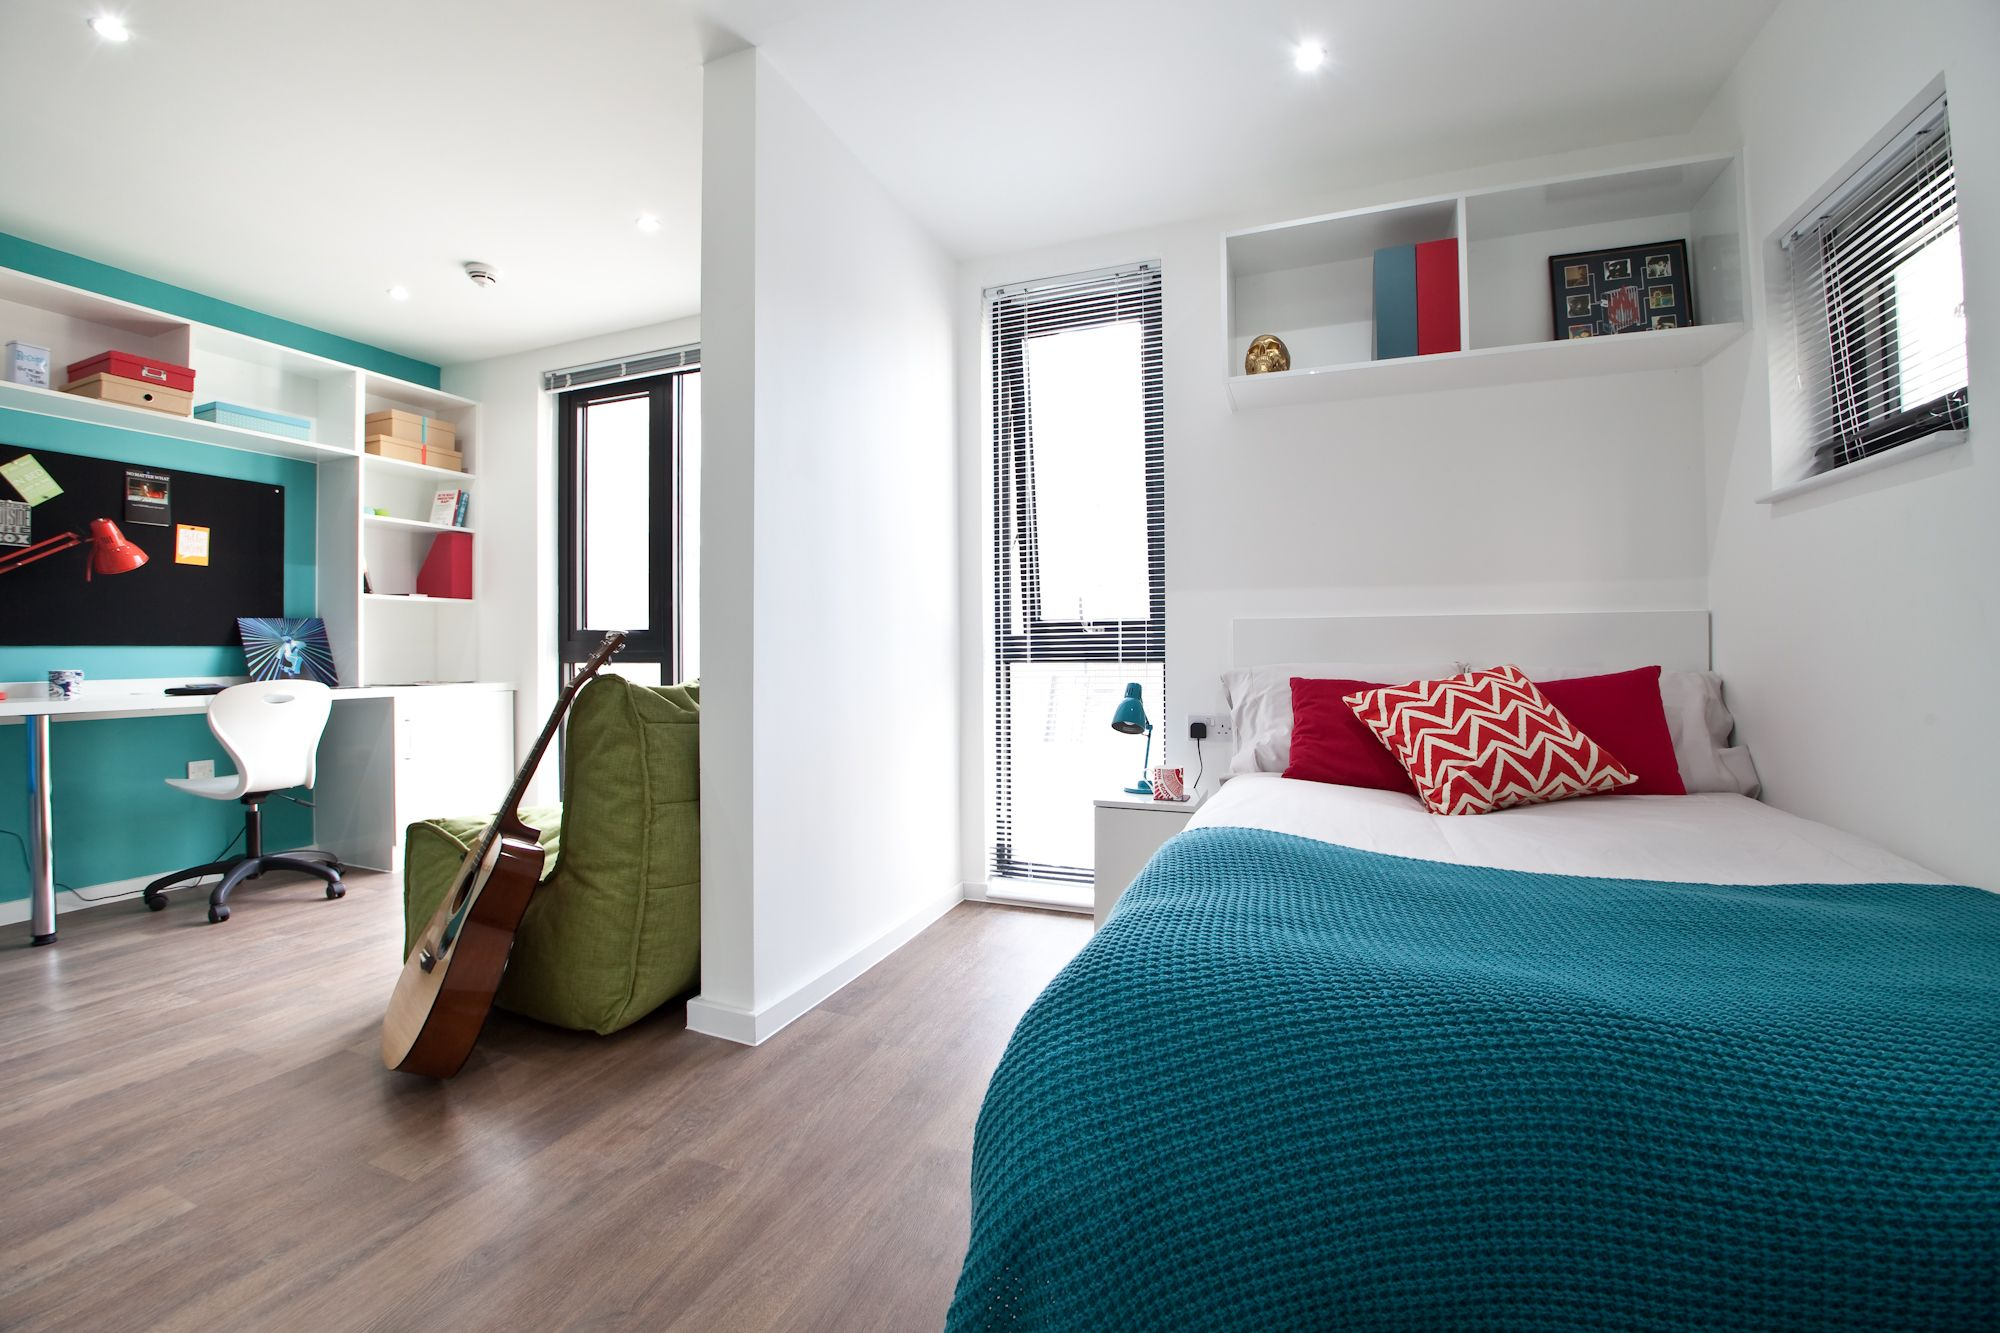 Expert Letting Agents Specialising In Student Accommodation And Professional Lets In Oxford Book Viewings Online Htt Student House Hostels Design Bedroom Diy